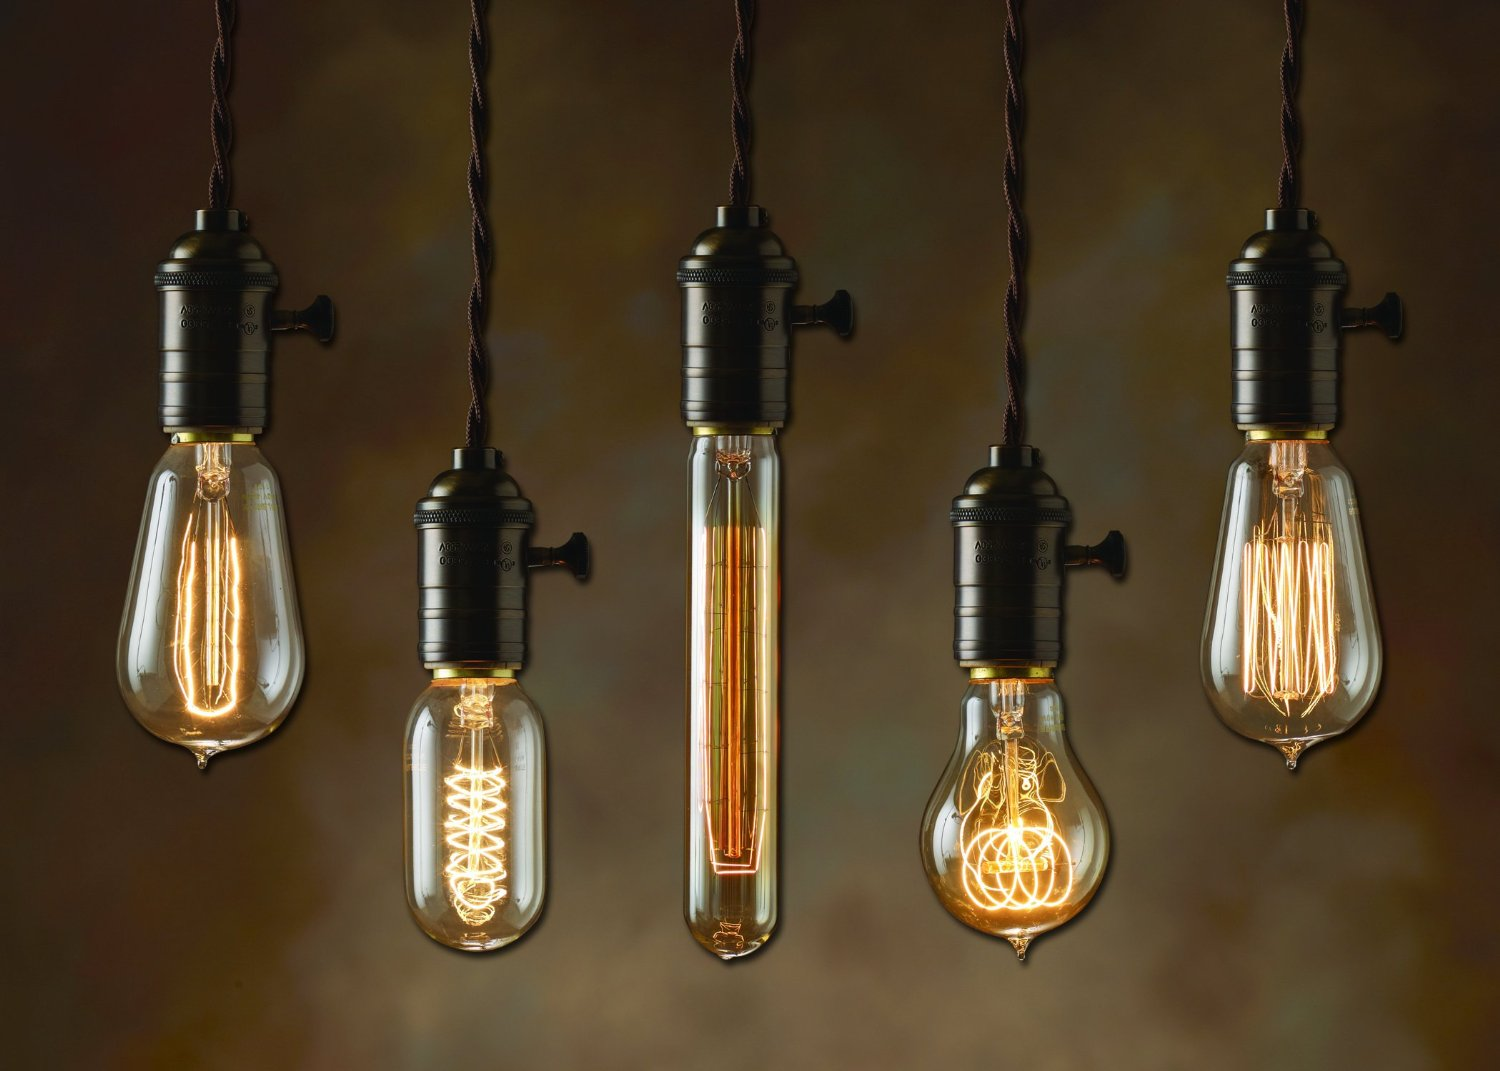 Vintage light bulbs stuff you should have for Vintage lampen